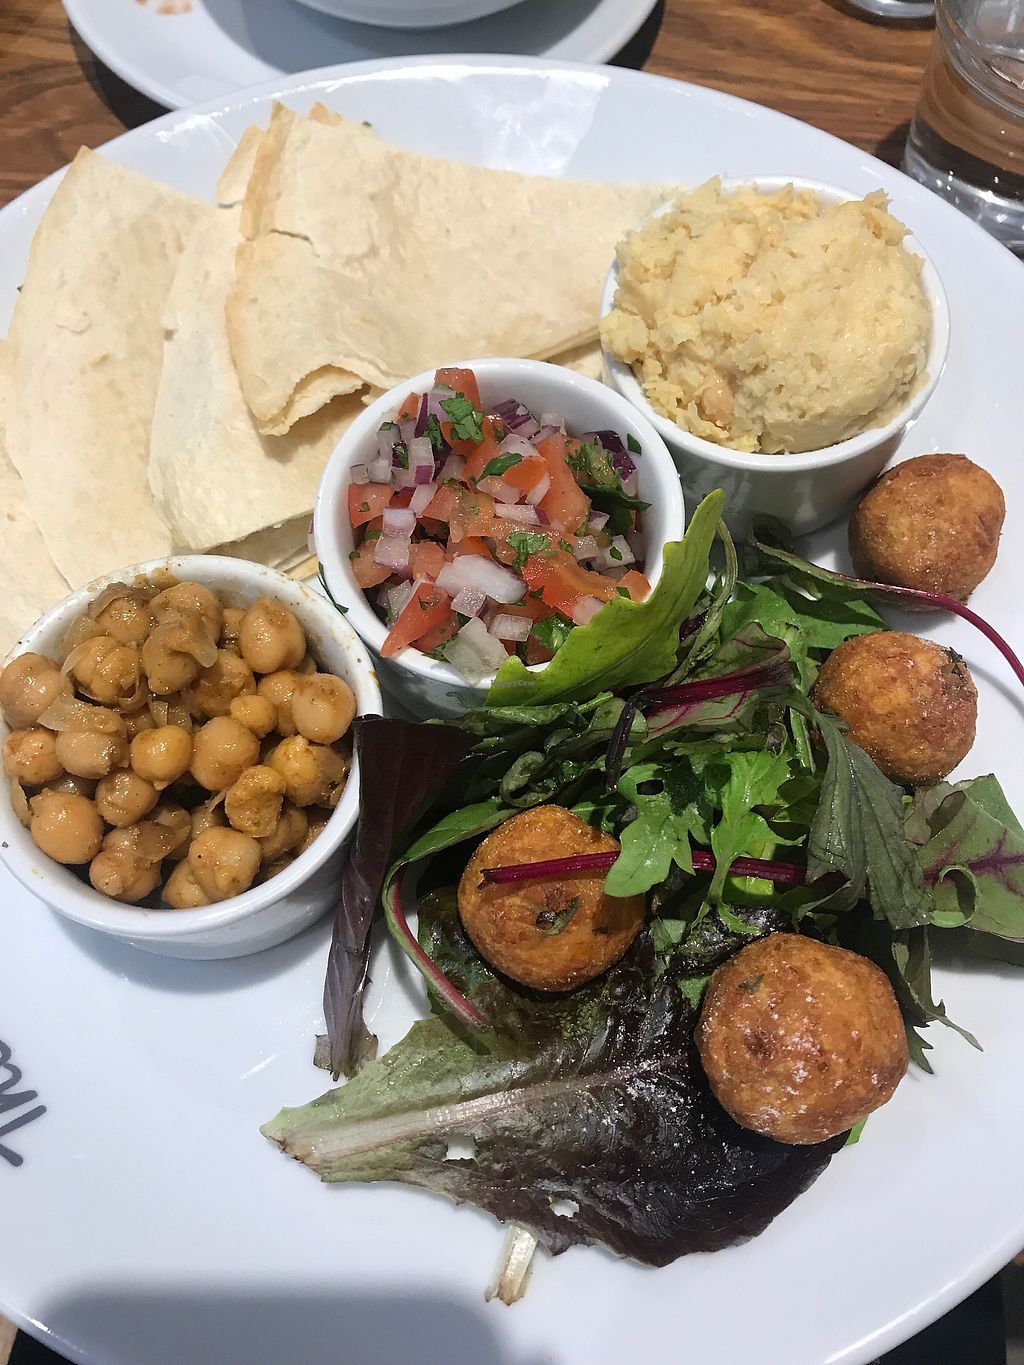 """Photo of The Forage  by <a href=""""/members/profile/MollySmith"""">MollySmith</a> <br/>The delicious vegan mezze board. I truly recommend it!  <br/> August 5, 2017  - <a href='/contact/abuse/image/74543/289006'>Report</a>"""